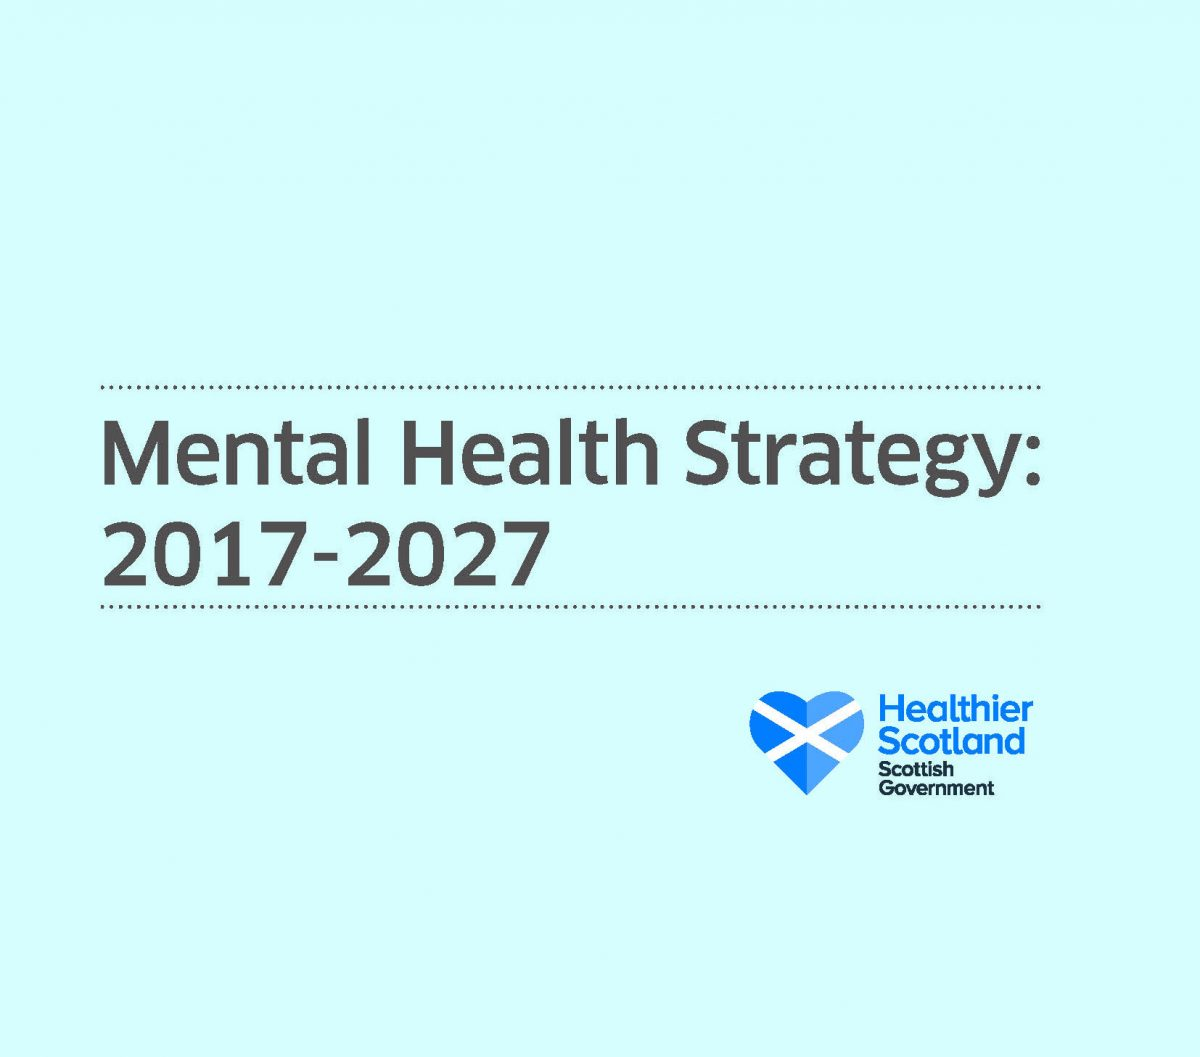 Mental Health Strategy 2017-2027 Cover